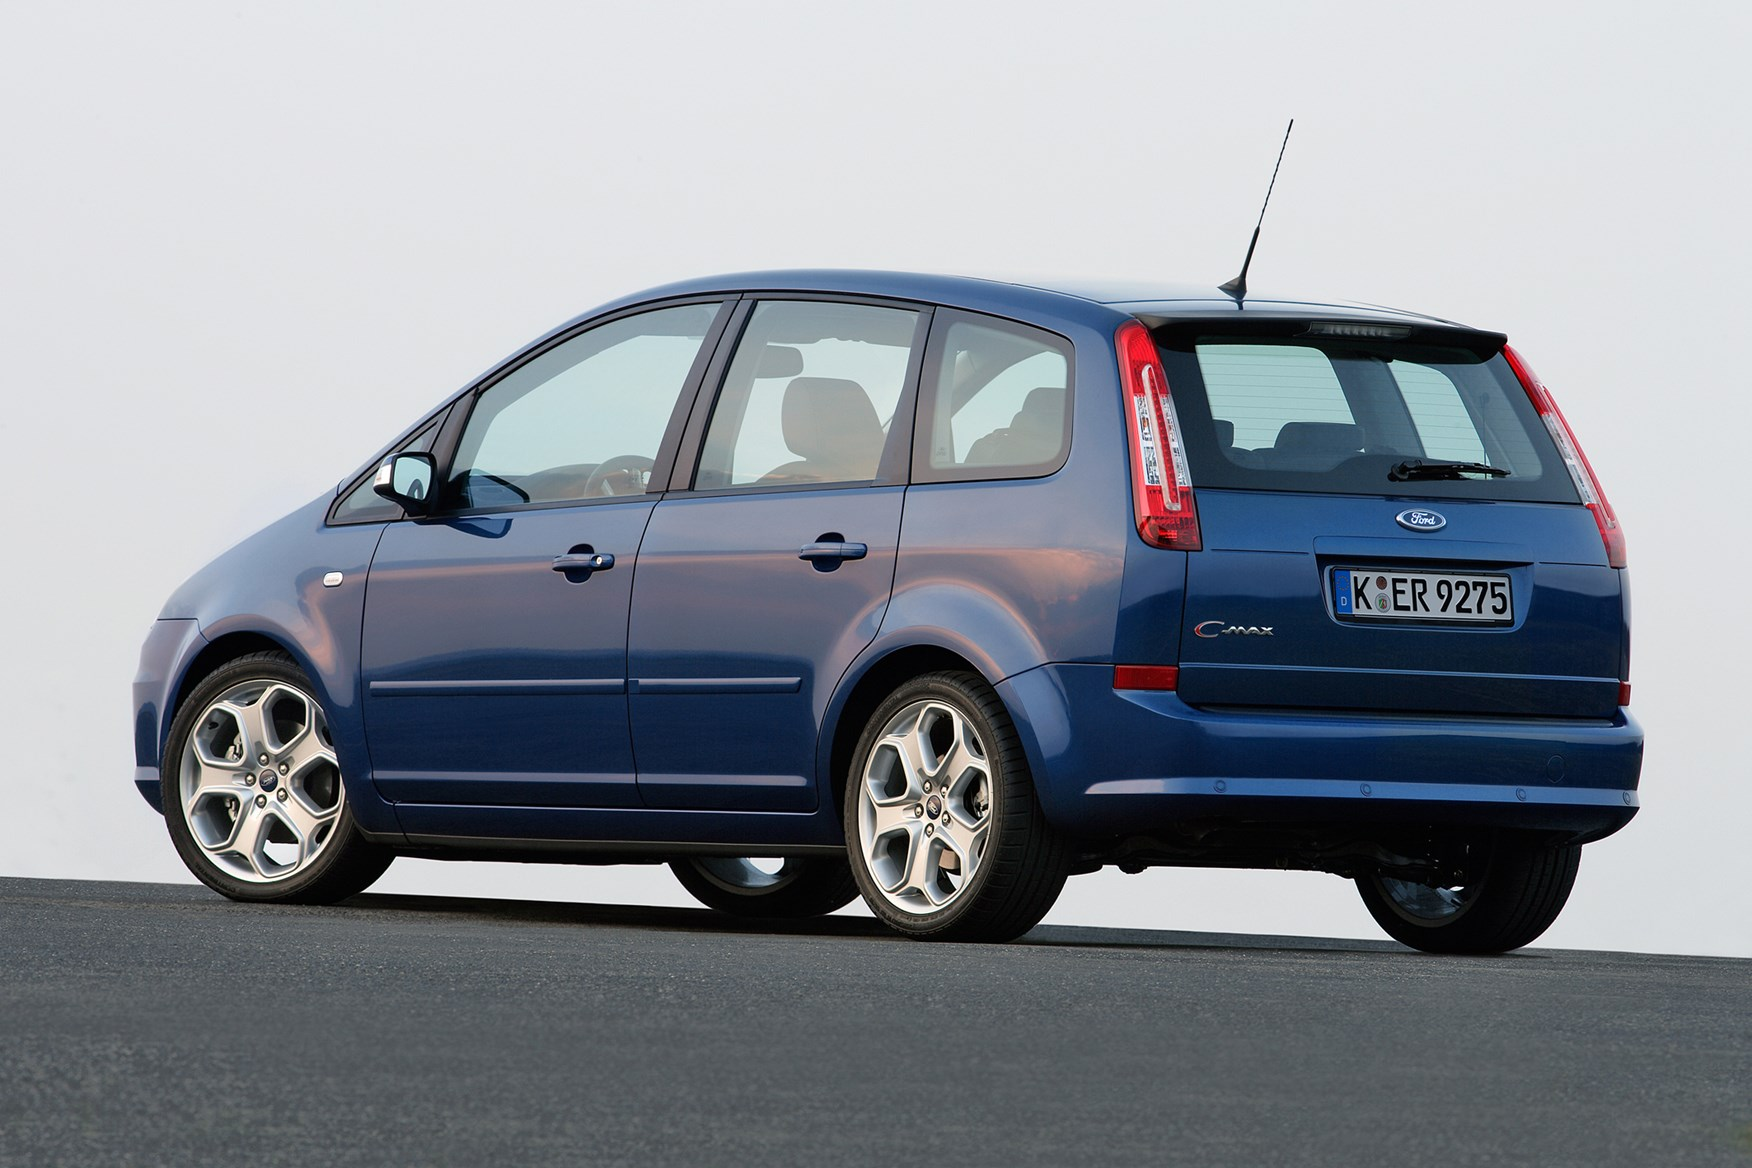 Ford Fiesta Ecoboost Review >> Ford Focus C-MAX Estate Review (2003 - 2010) | Parkers